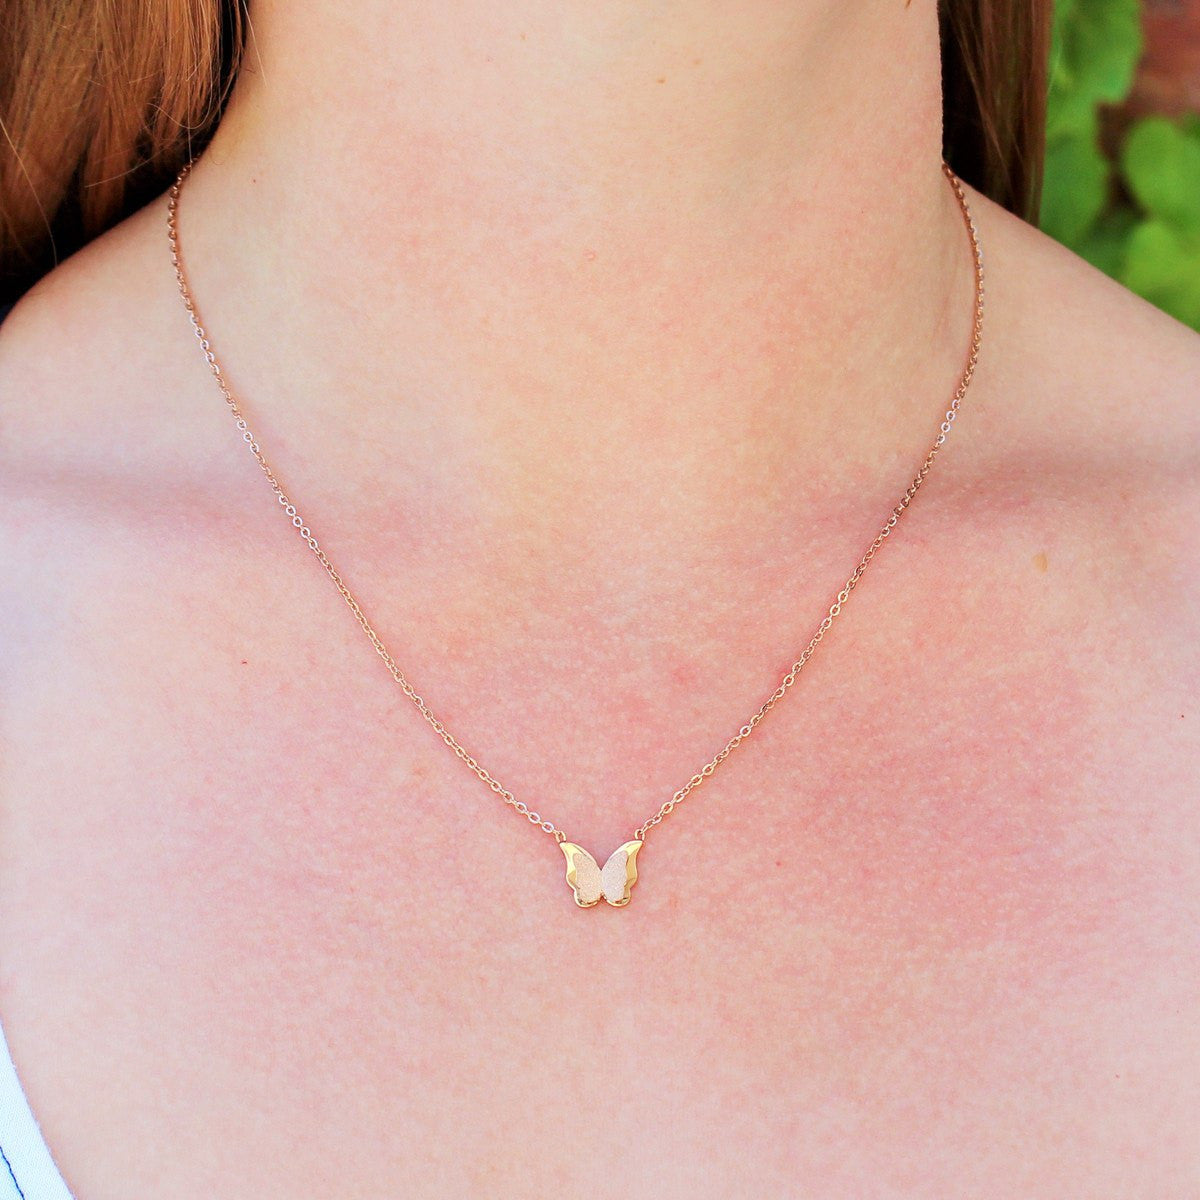 Necklace, Jewelry - Robert Matthew Emily Butterfly Necklace